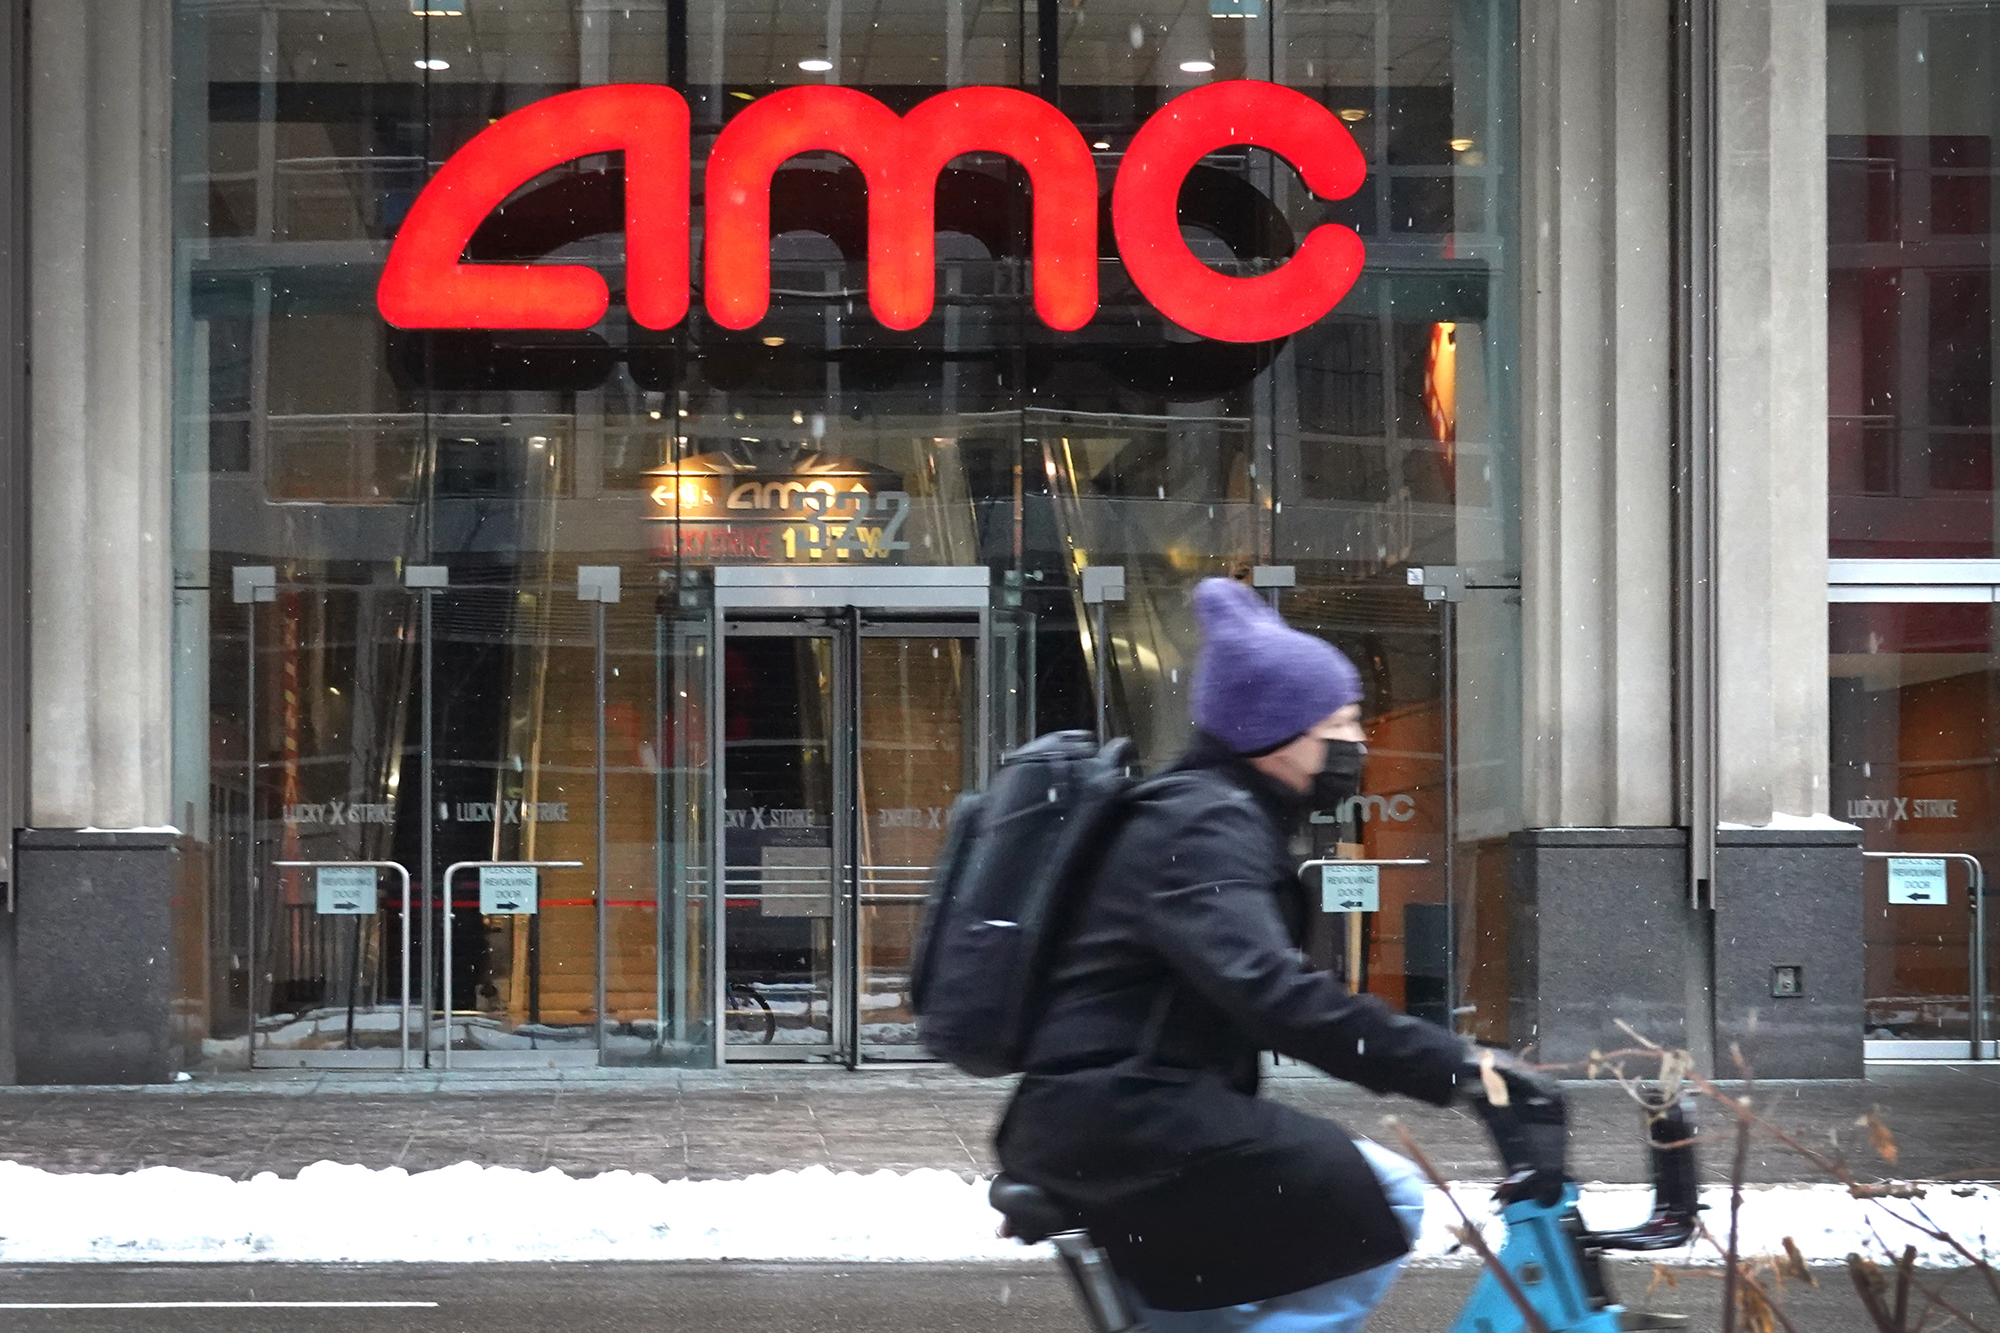 An AMC theater on January 27, 2021 in Chicago, Illinois.